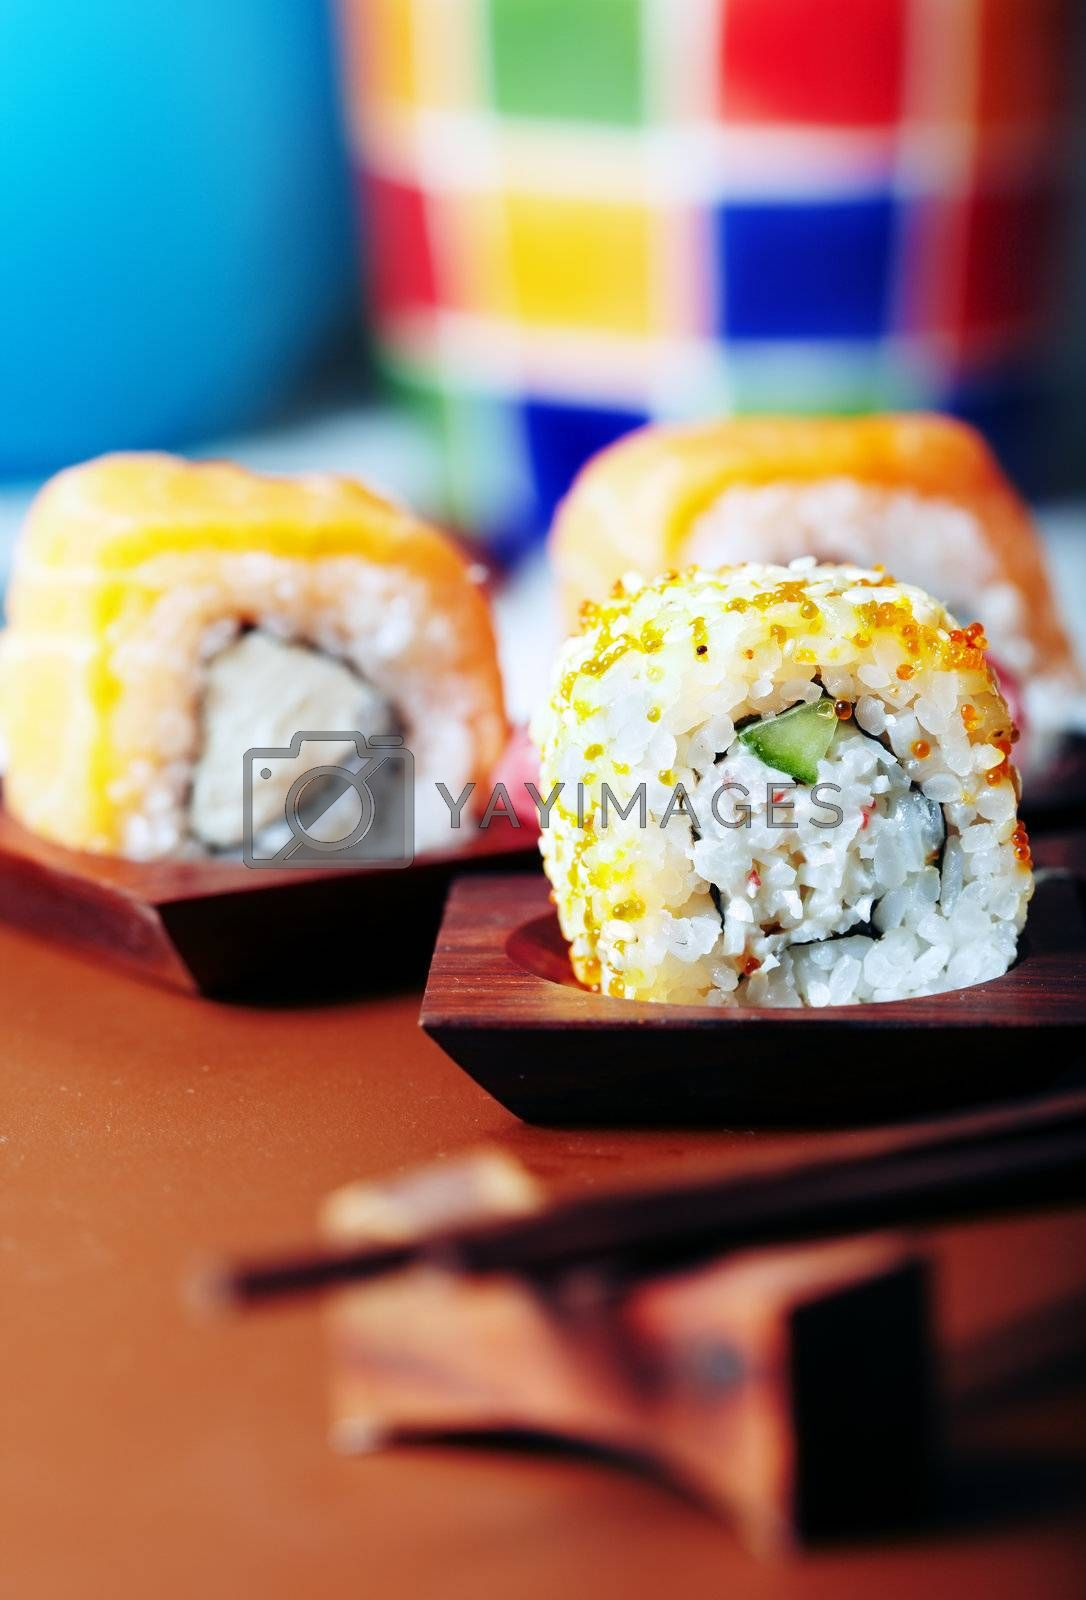 Close-up vertical photo of the rolled sushi with rice and cucumber on the table. Vibrant color and shallow depth of field for natural view